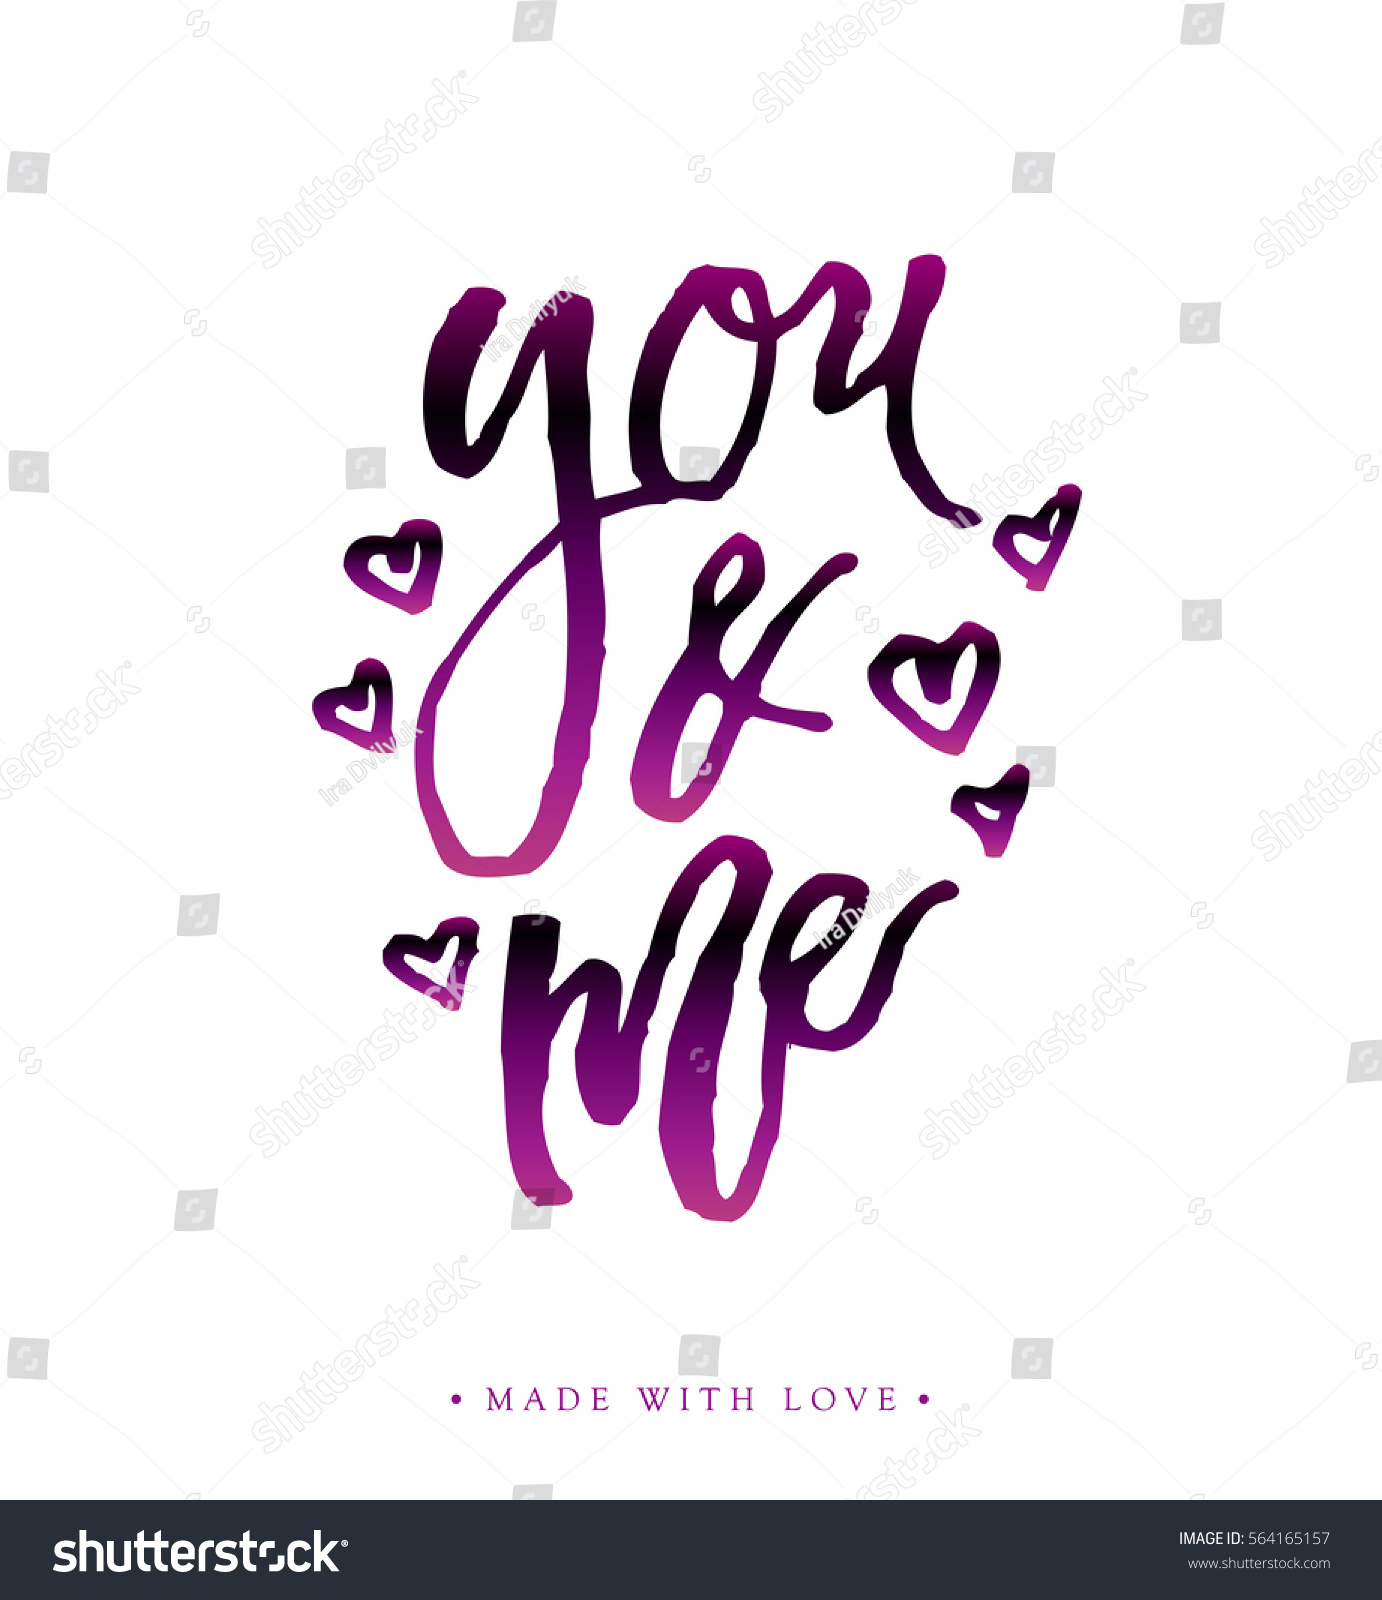 You and me love calligraphy valentines day romantic greeting card id 564165157 m4hsunfo